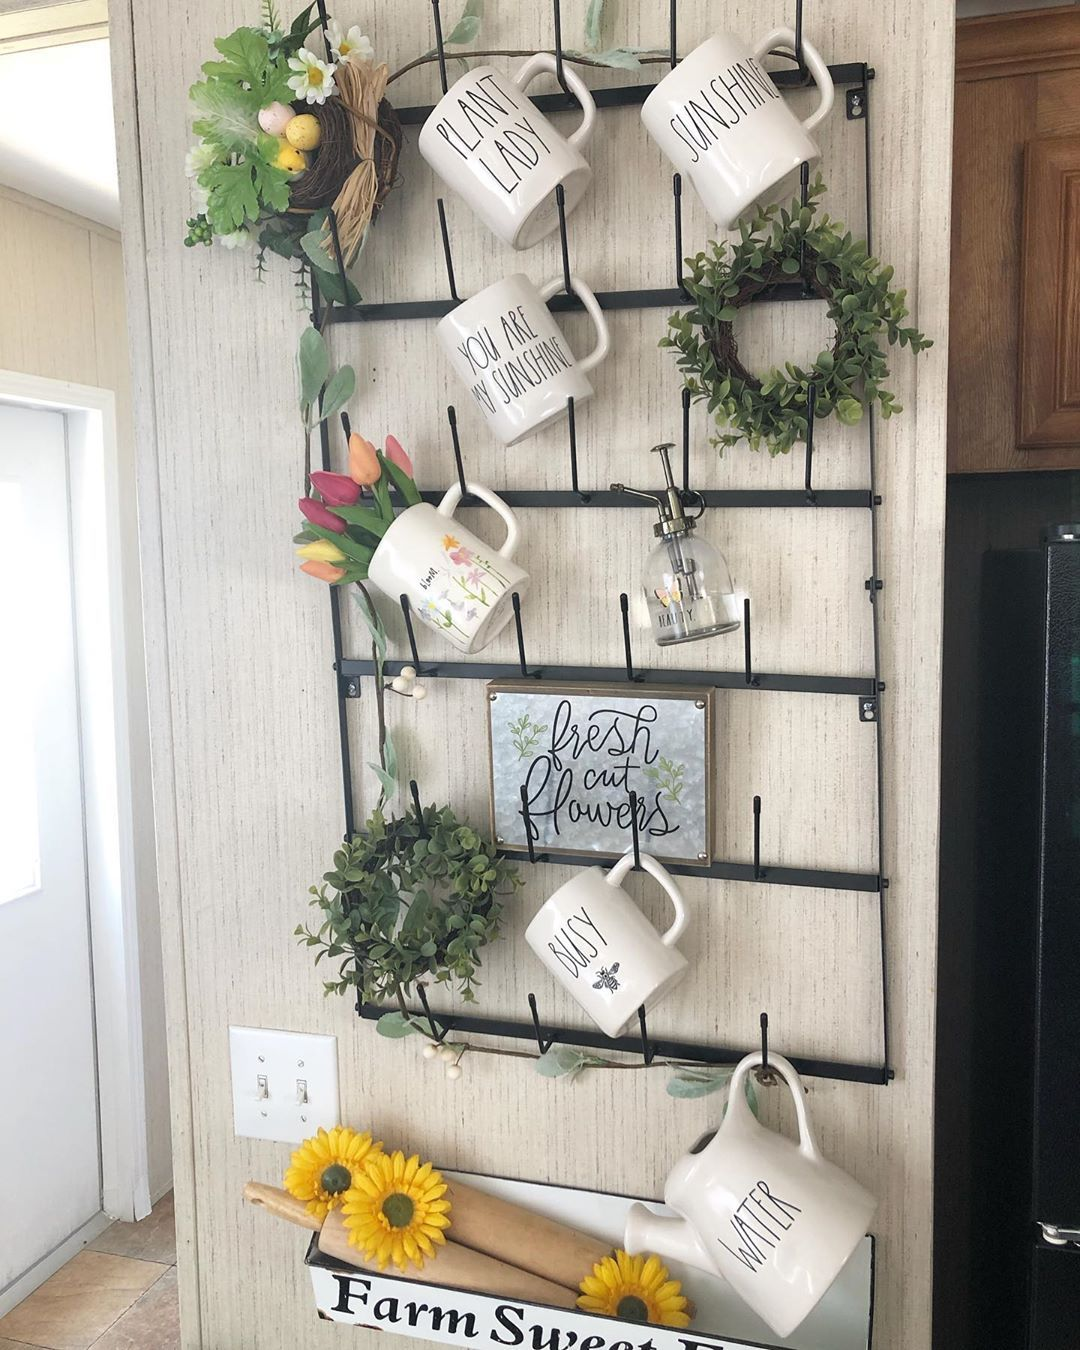 "Nicole � on Instagram: ""Happy Tuesday y'all I redecorated my mug rack today. Wanted to go simple and a lot of greenery and spring vibes hope y'all like it! I also…"""